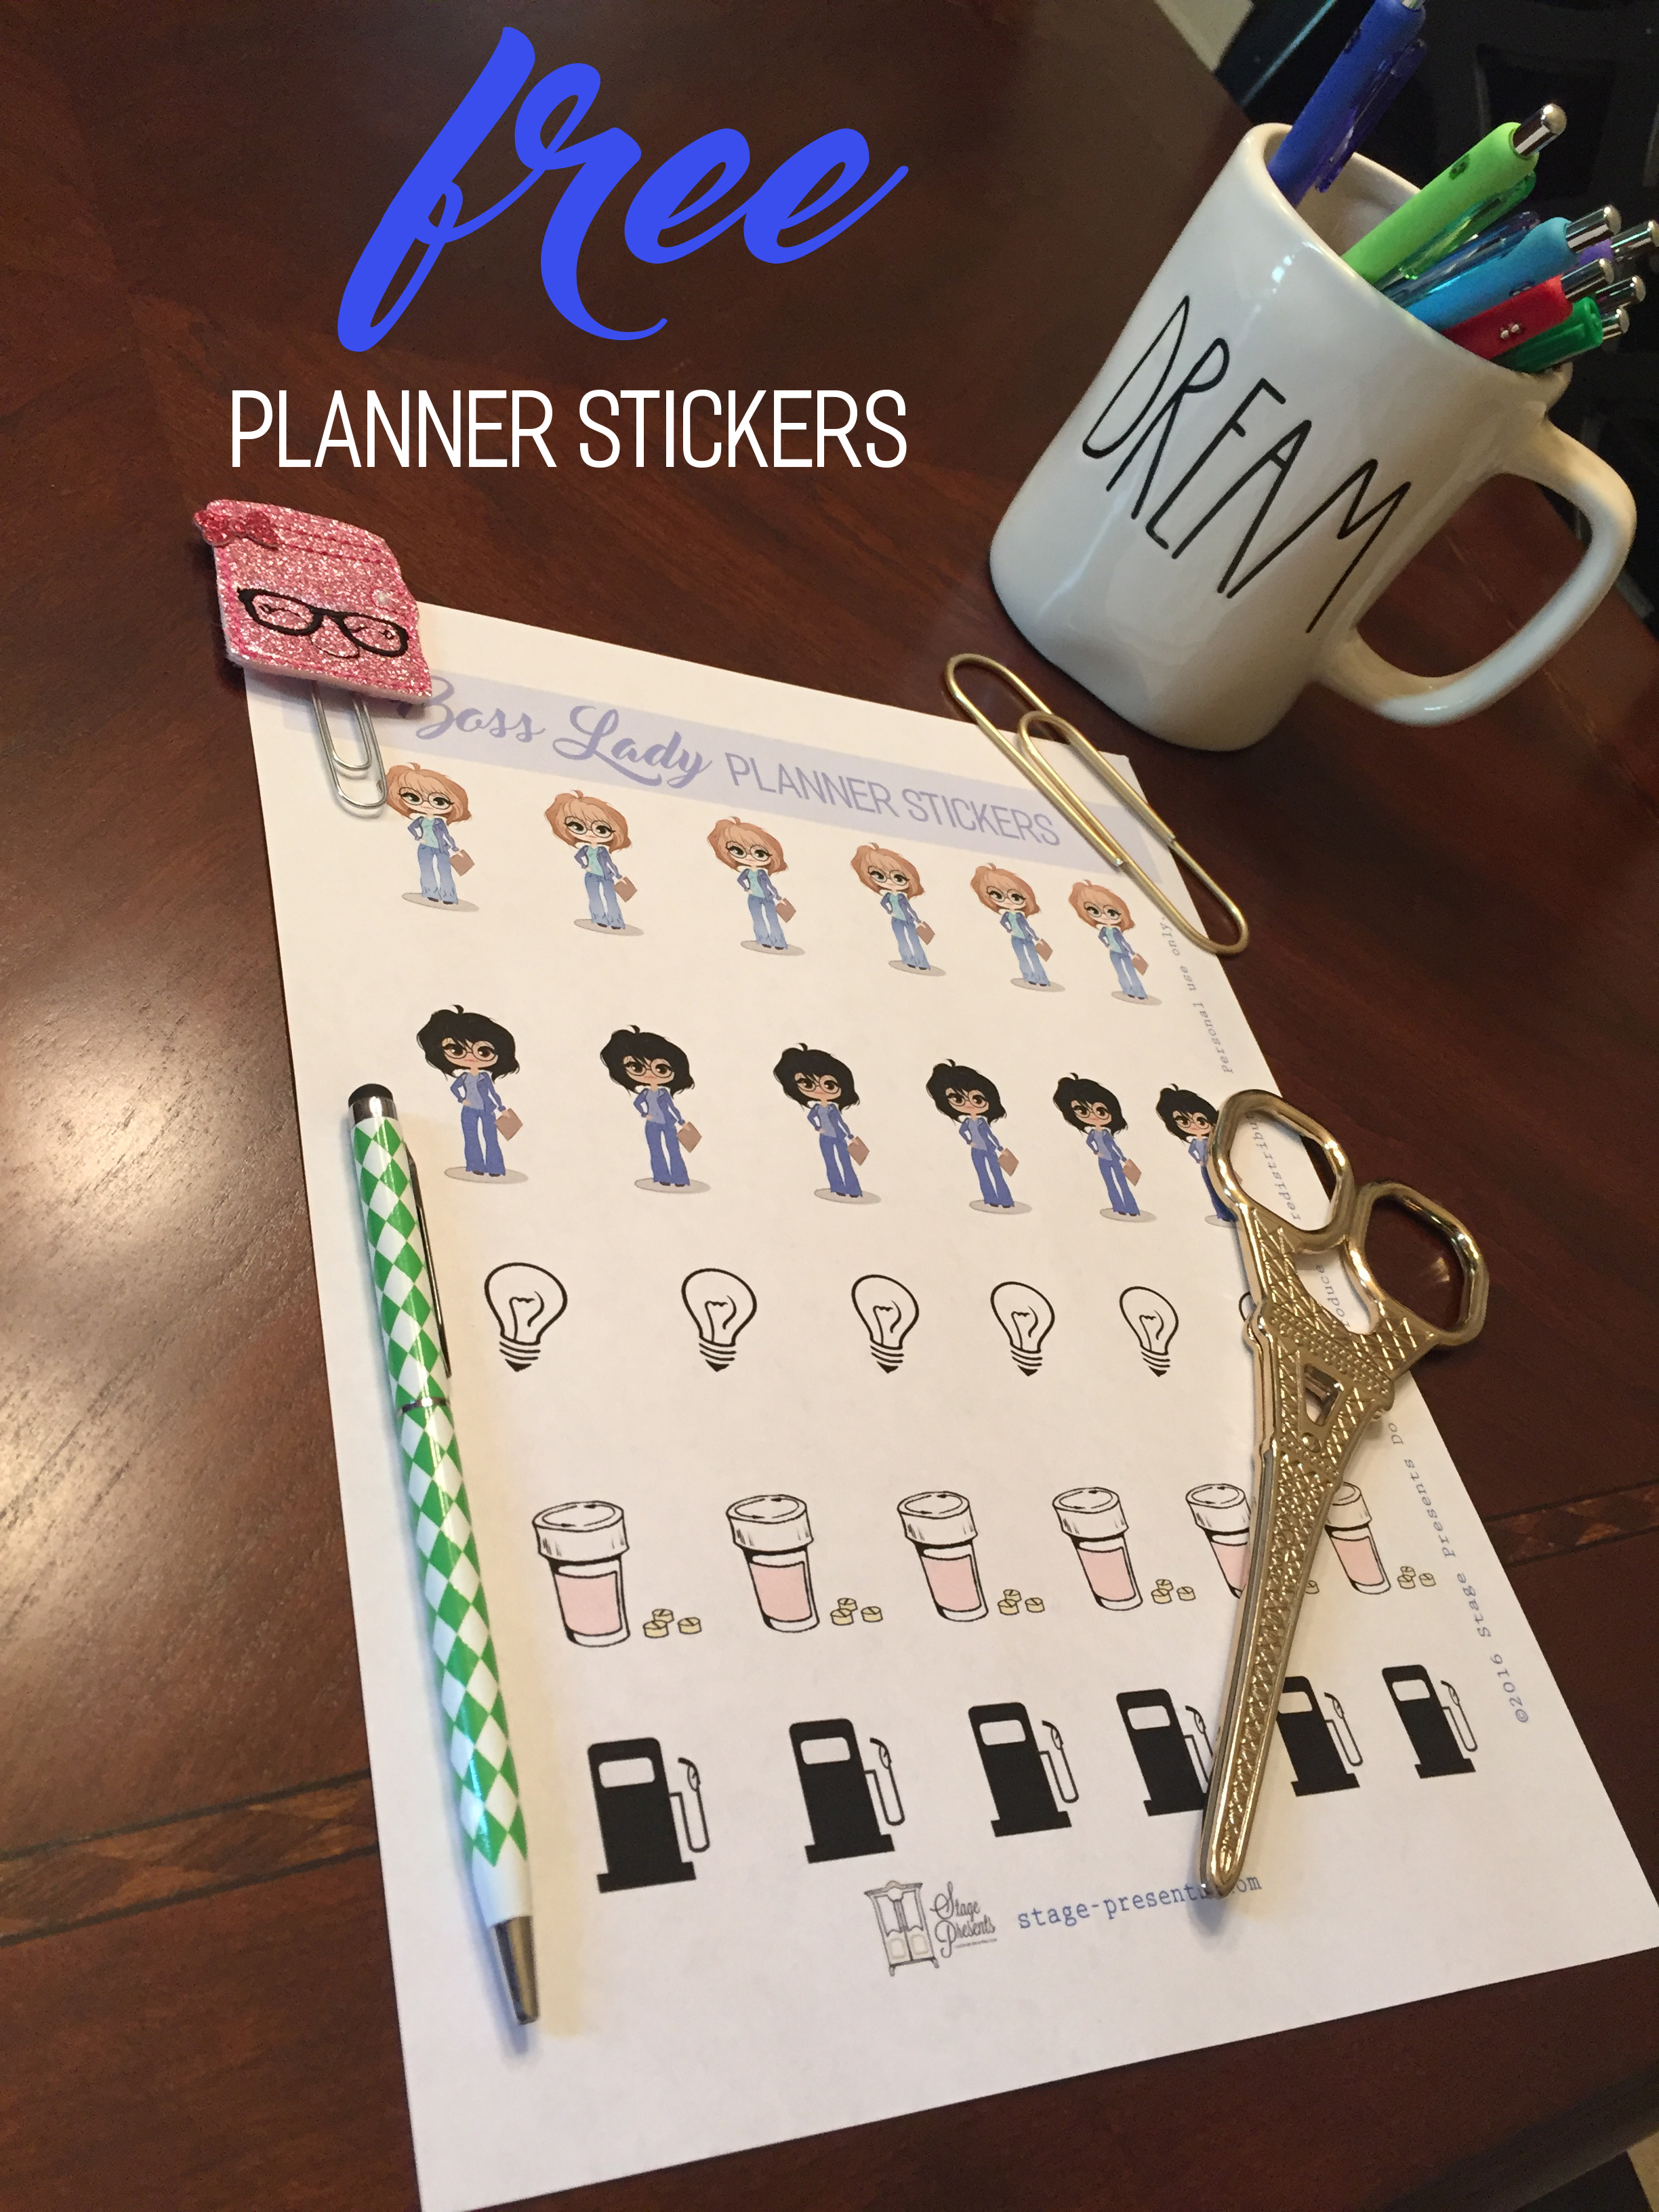 Free Boss Lady Planner Stickers found on stage-presents.com